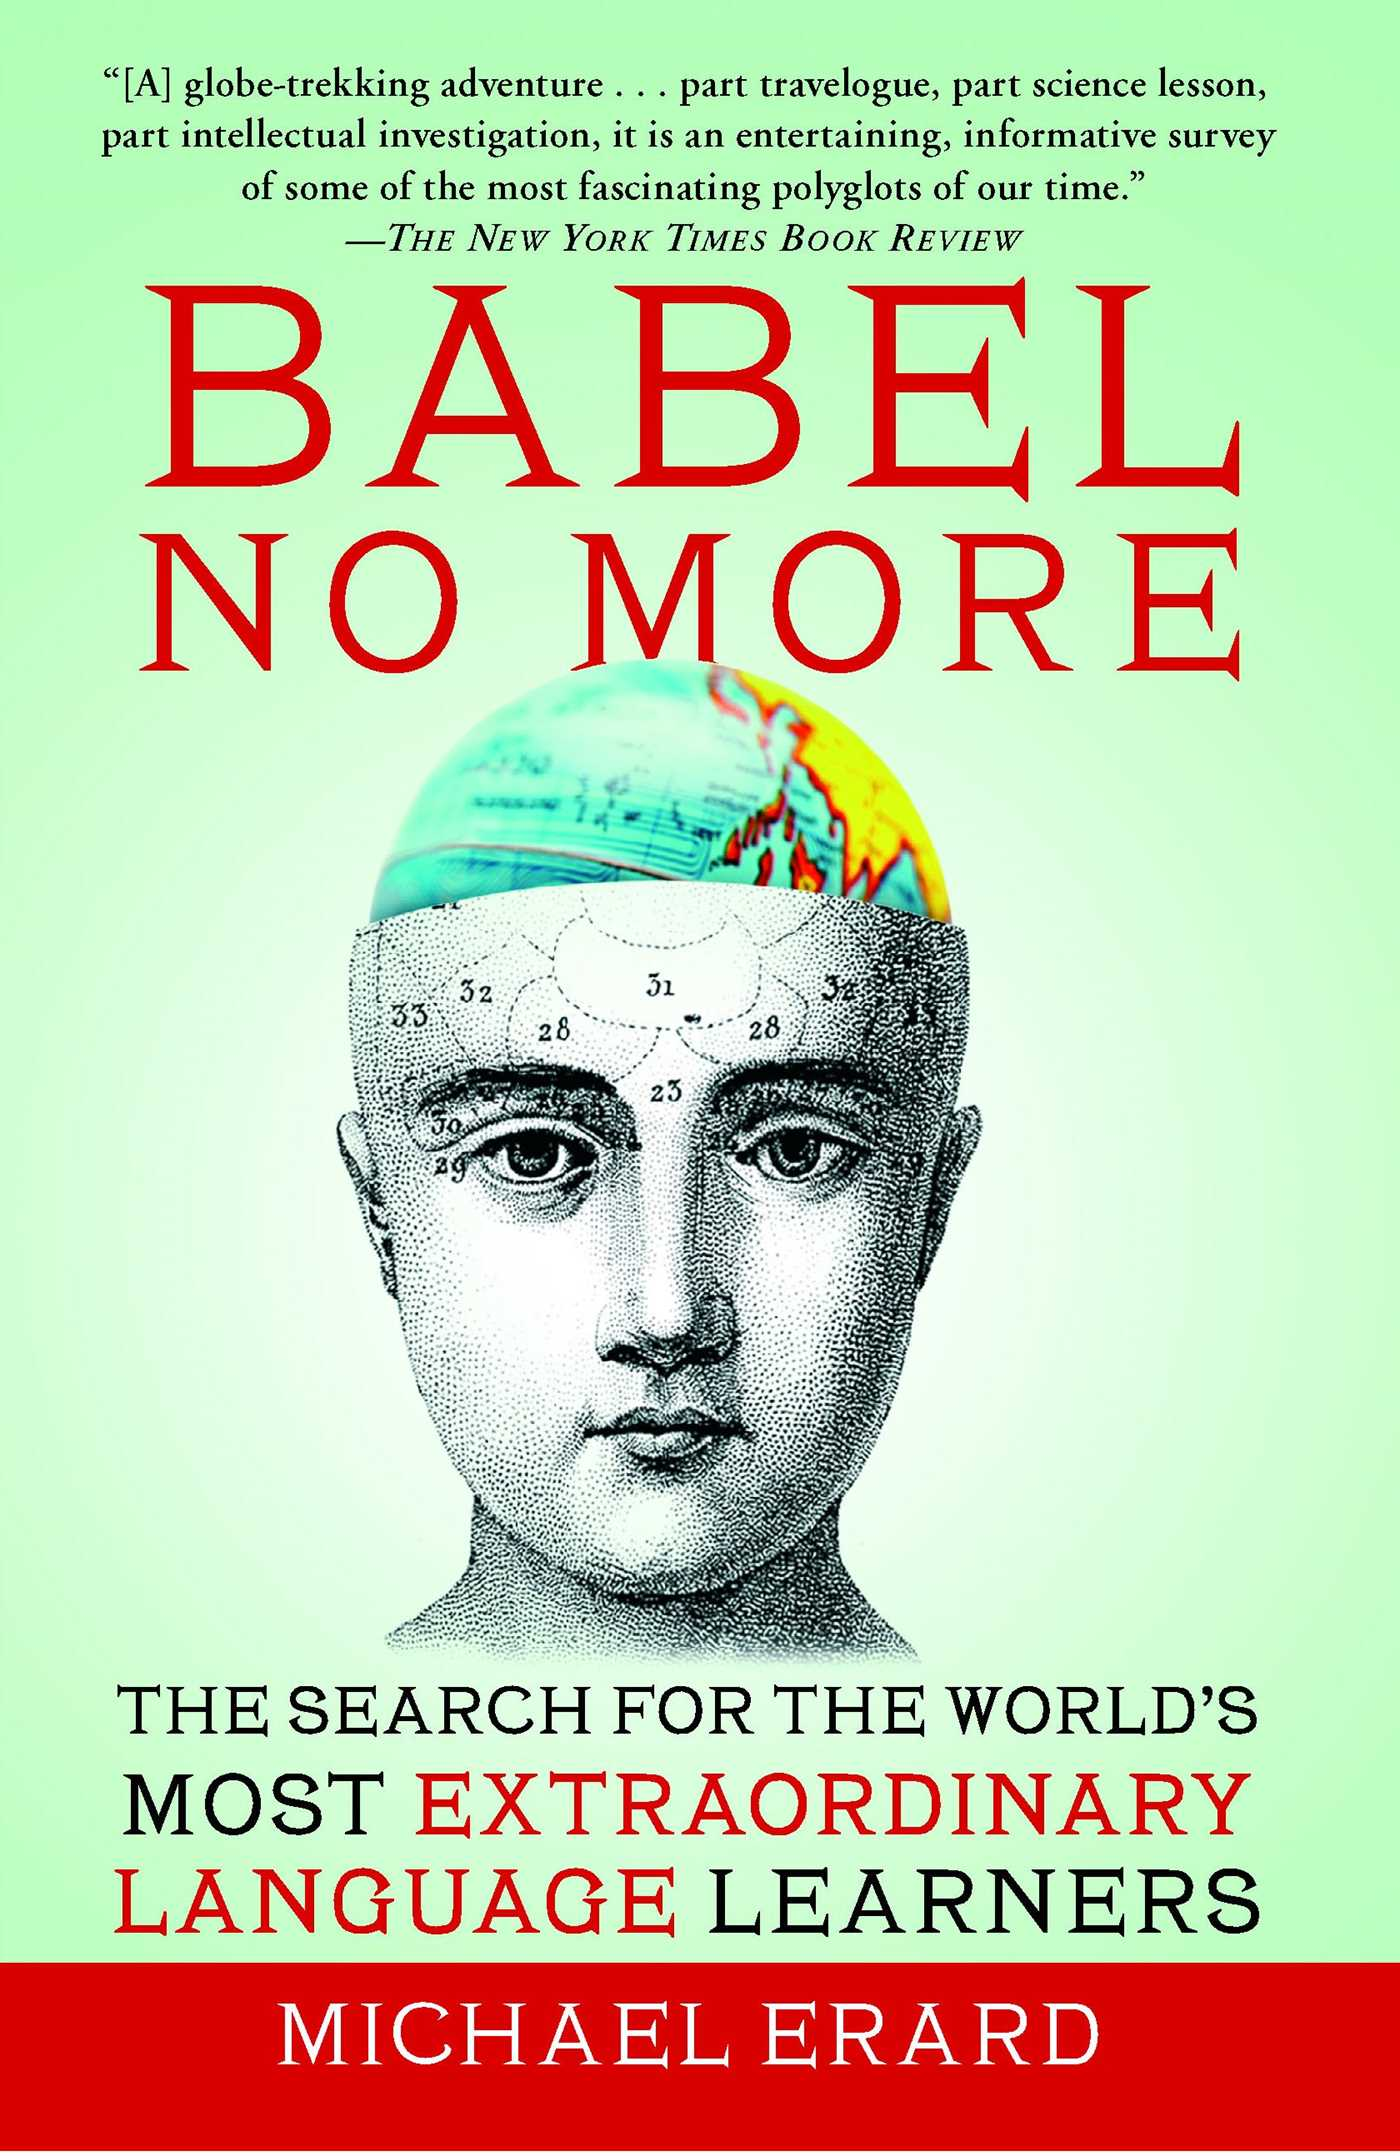 Babel no more 9781451628272 hr